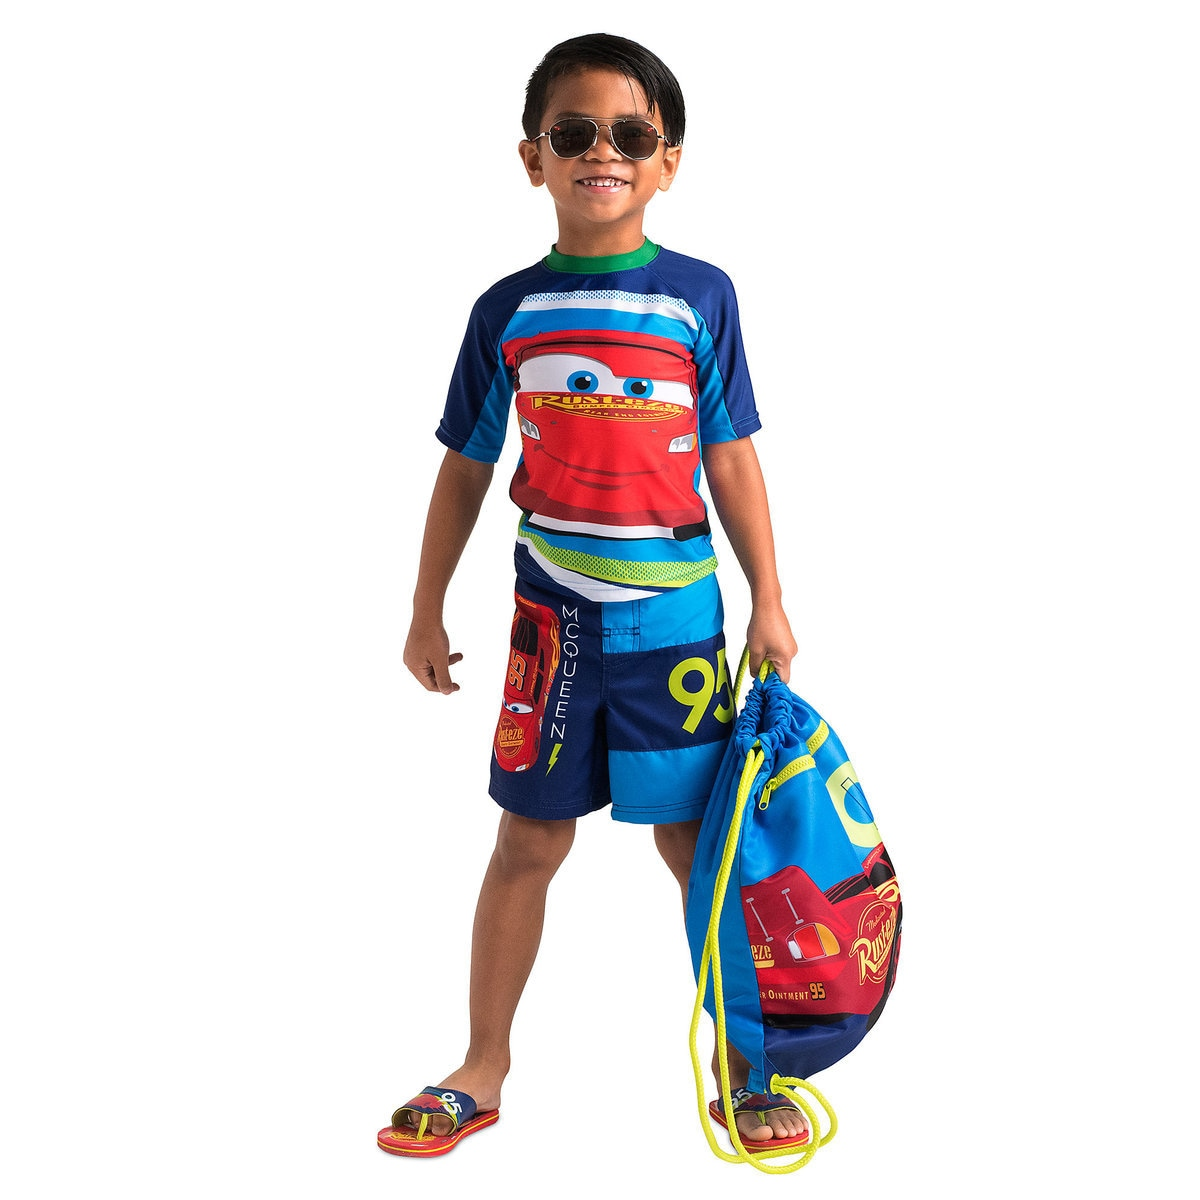 246ed63db9 Product Image of Lightning McQueen Swimwear Collection for Kids # 1